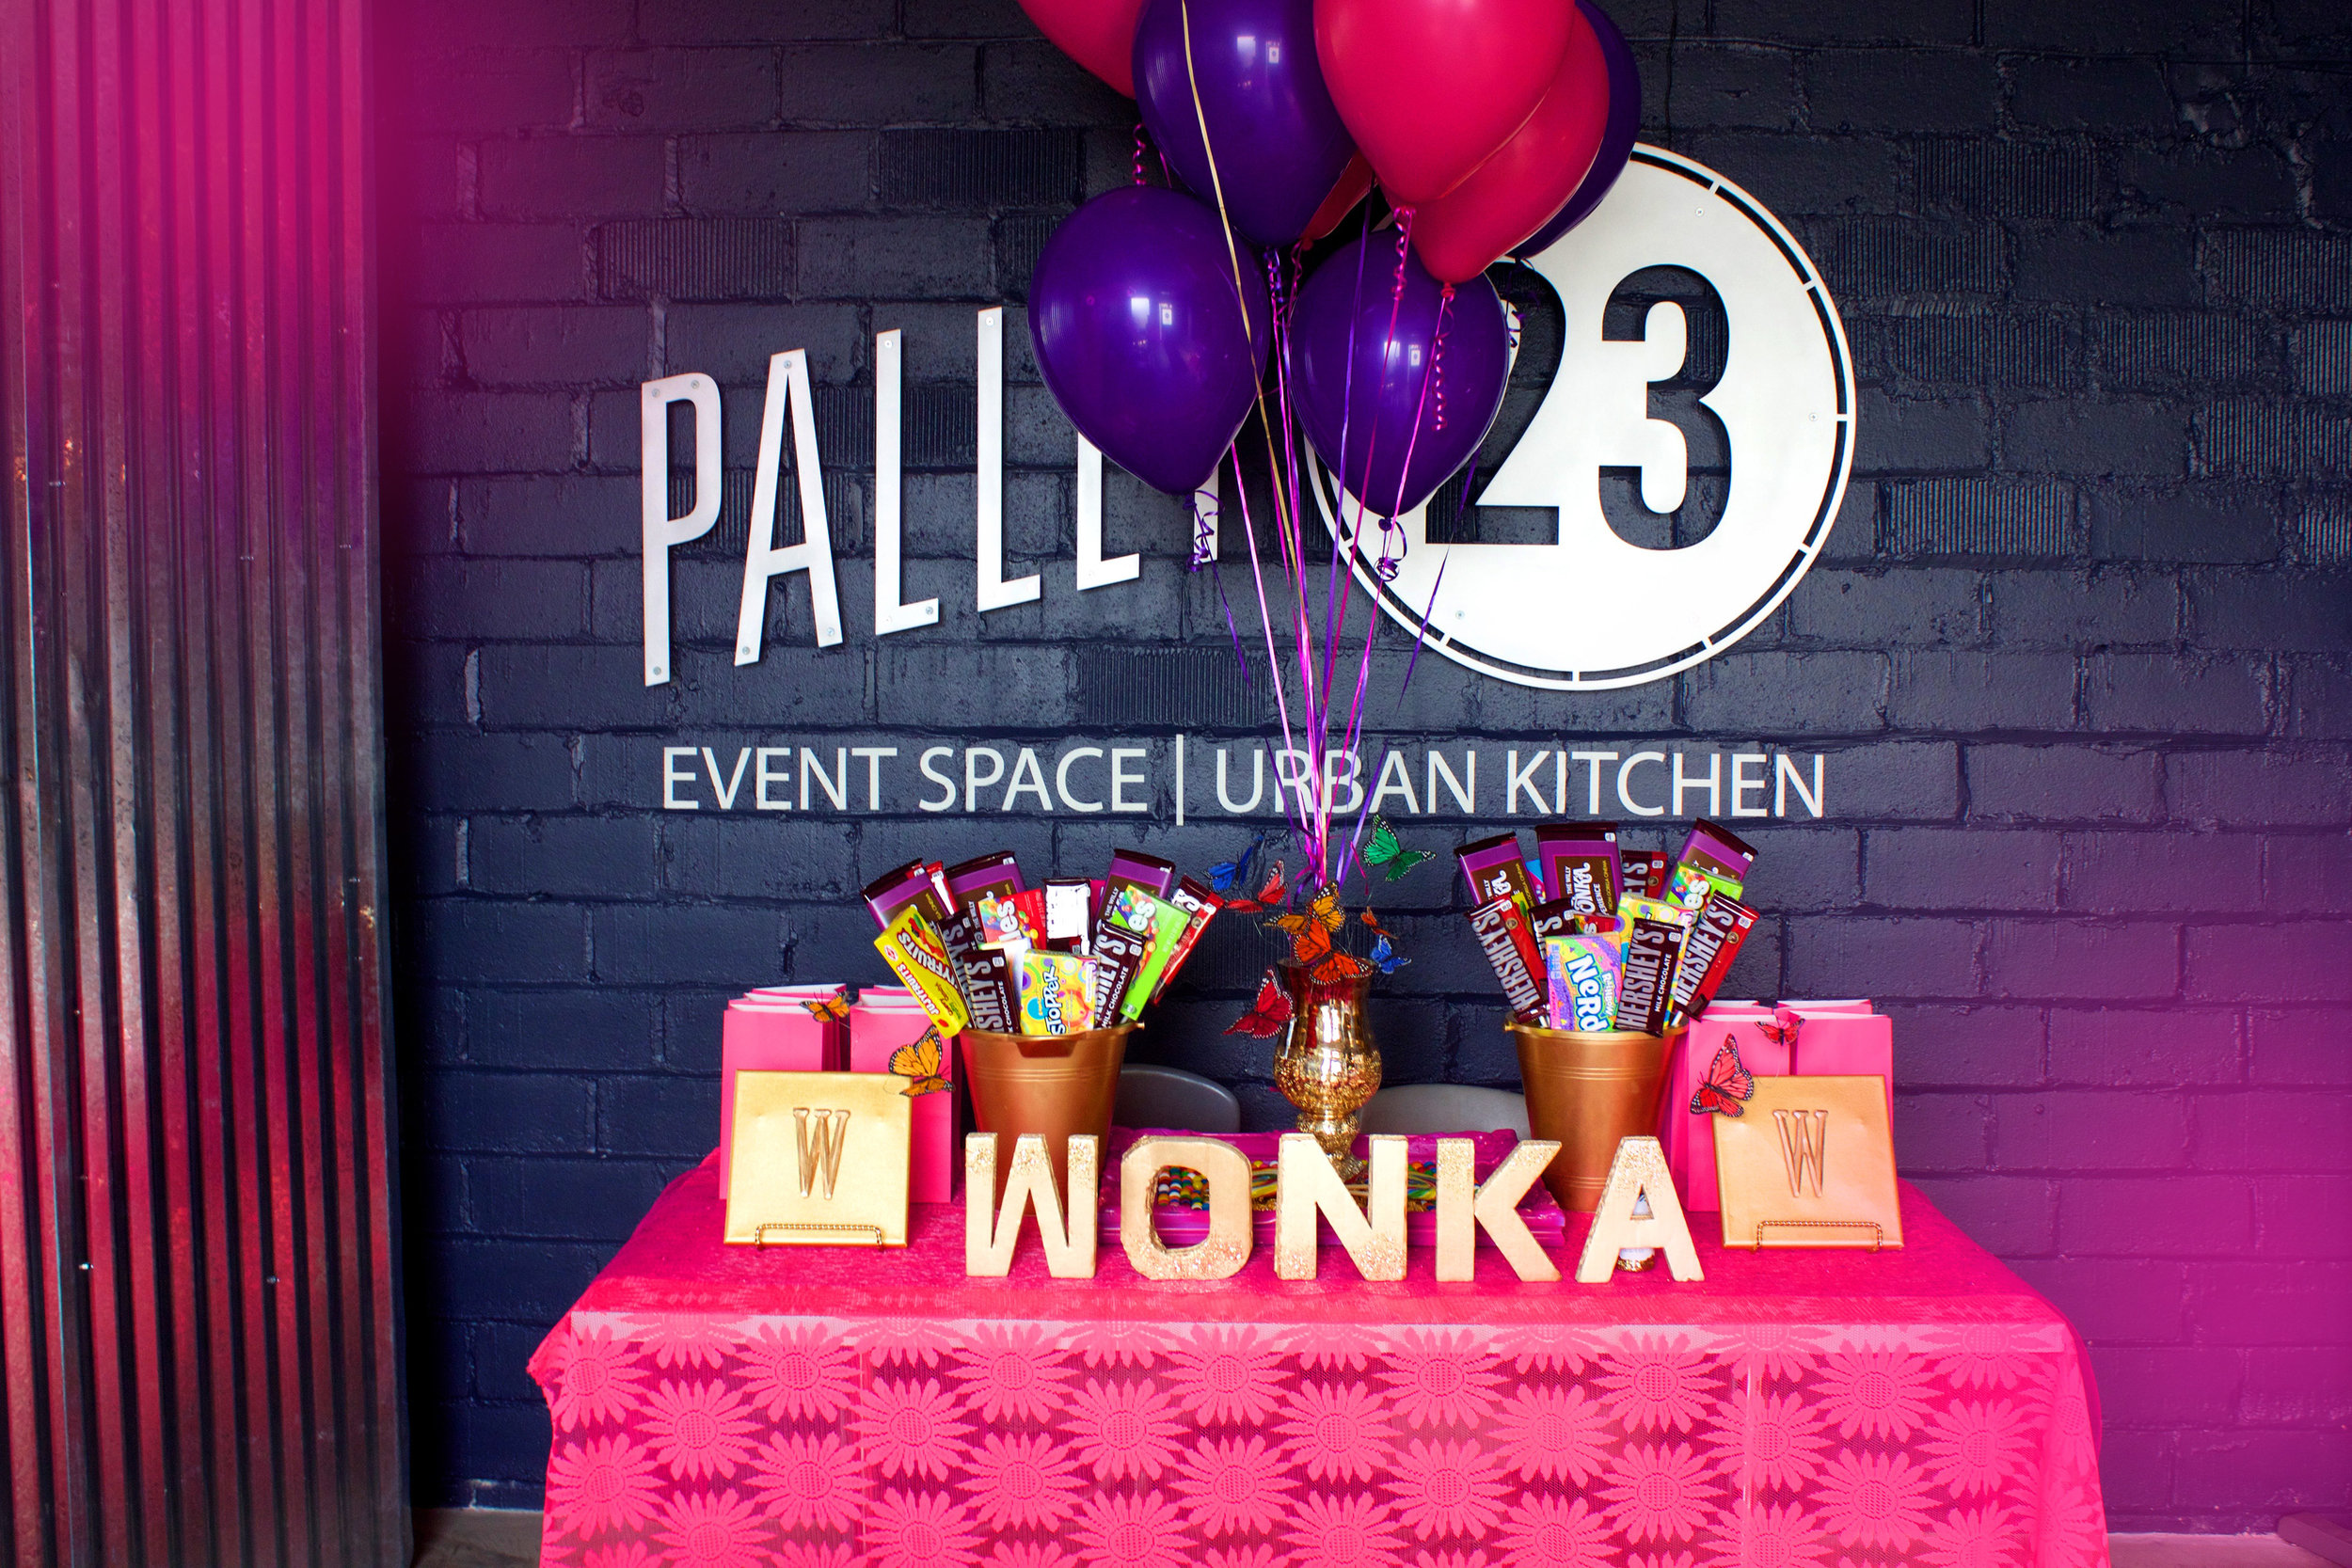 Gorilla Cinema Presents: The Willy Wonka Experience at Pallet 23